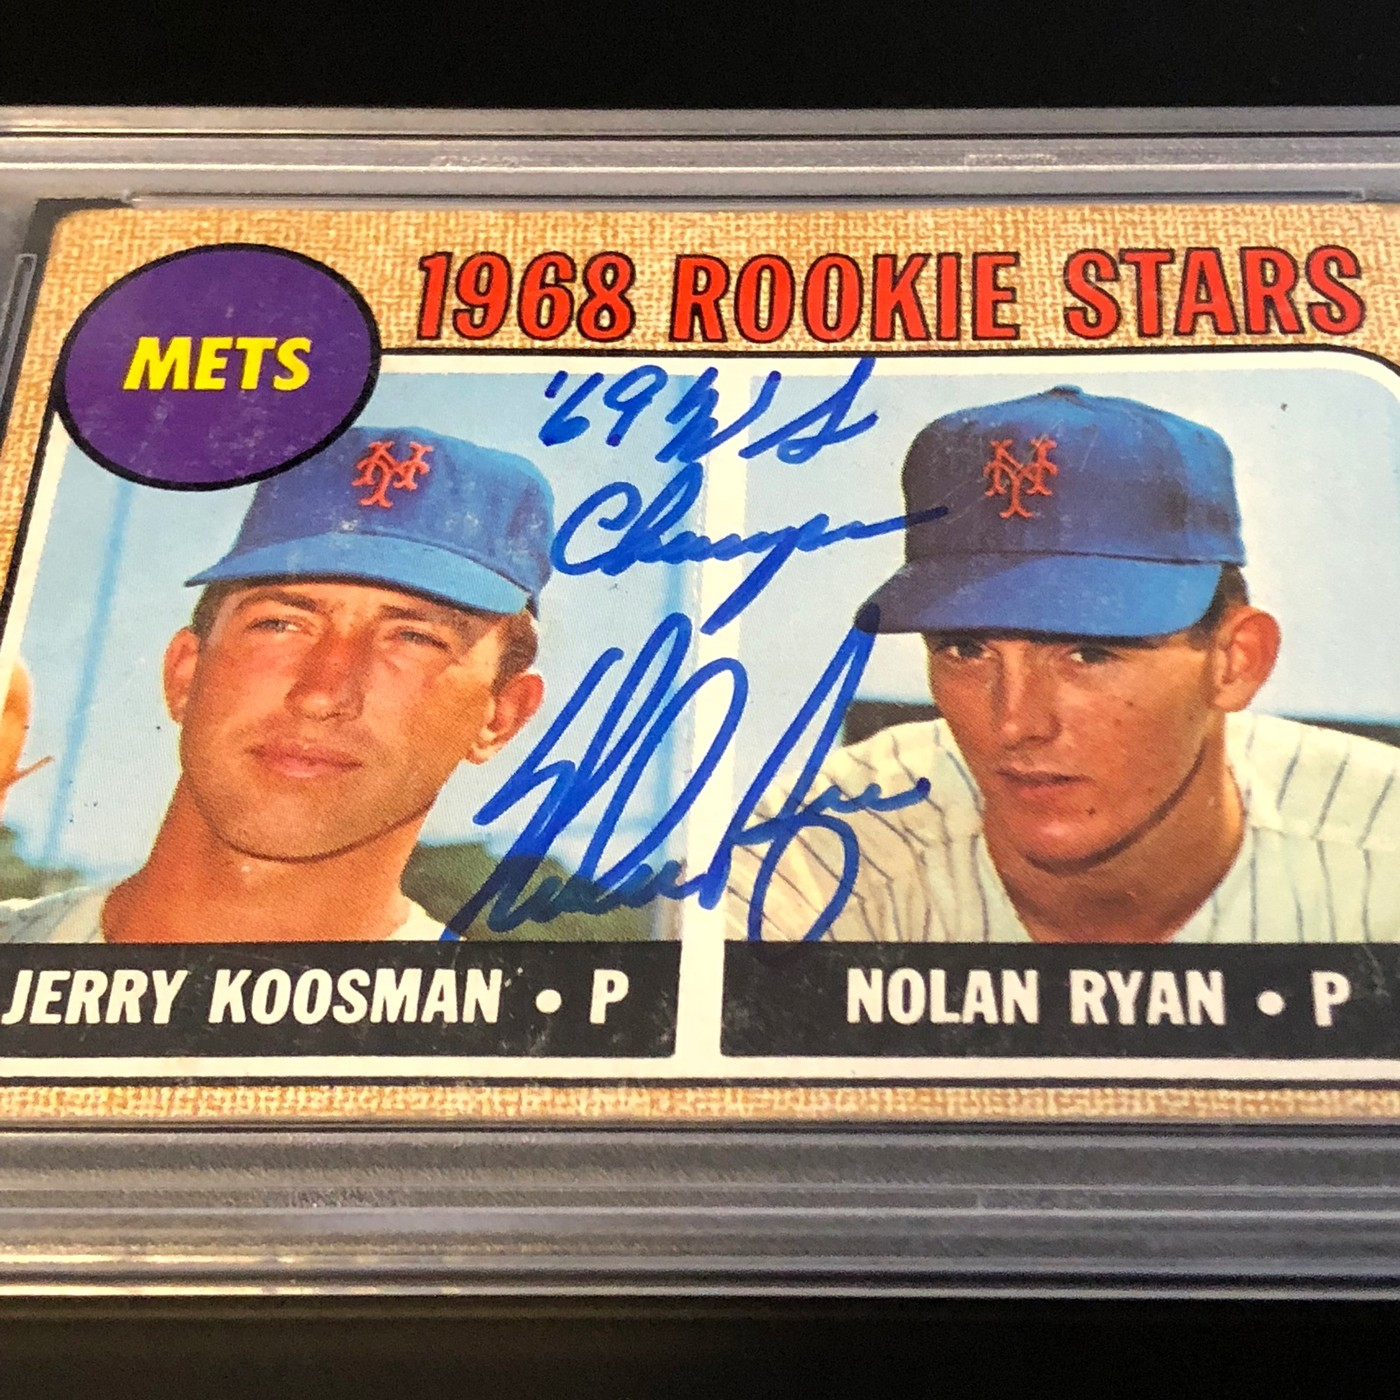 Nolan Ryan Signed 1968 Topps Rookie Card Collectionzz